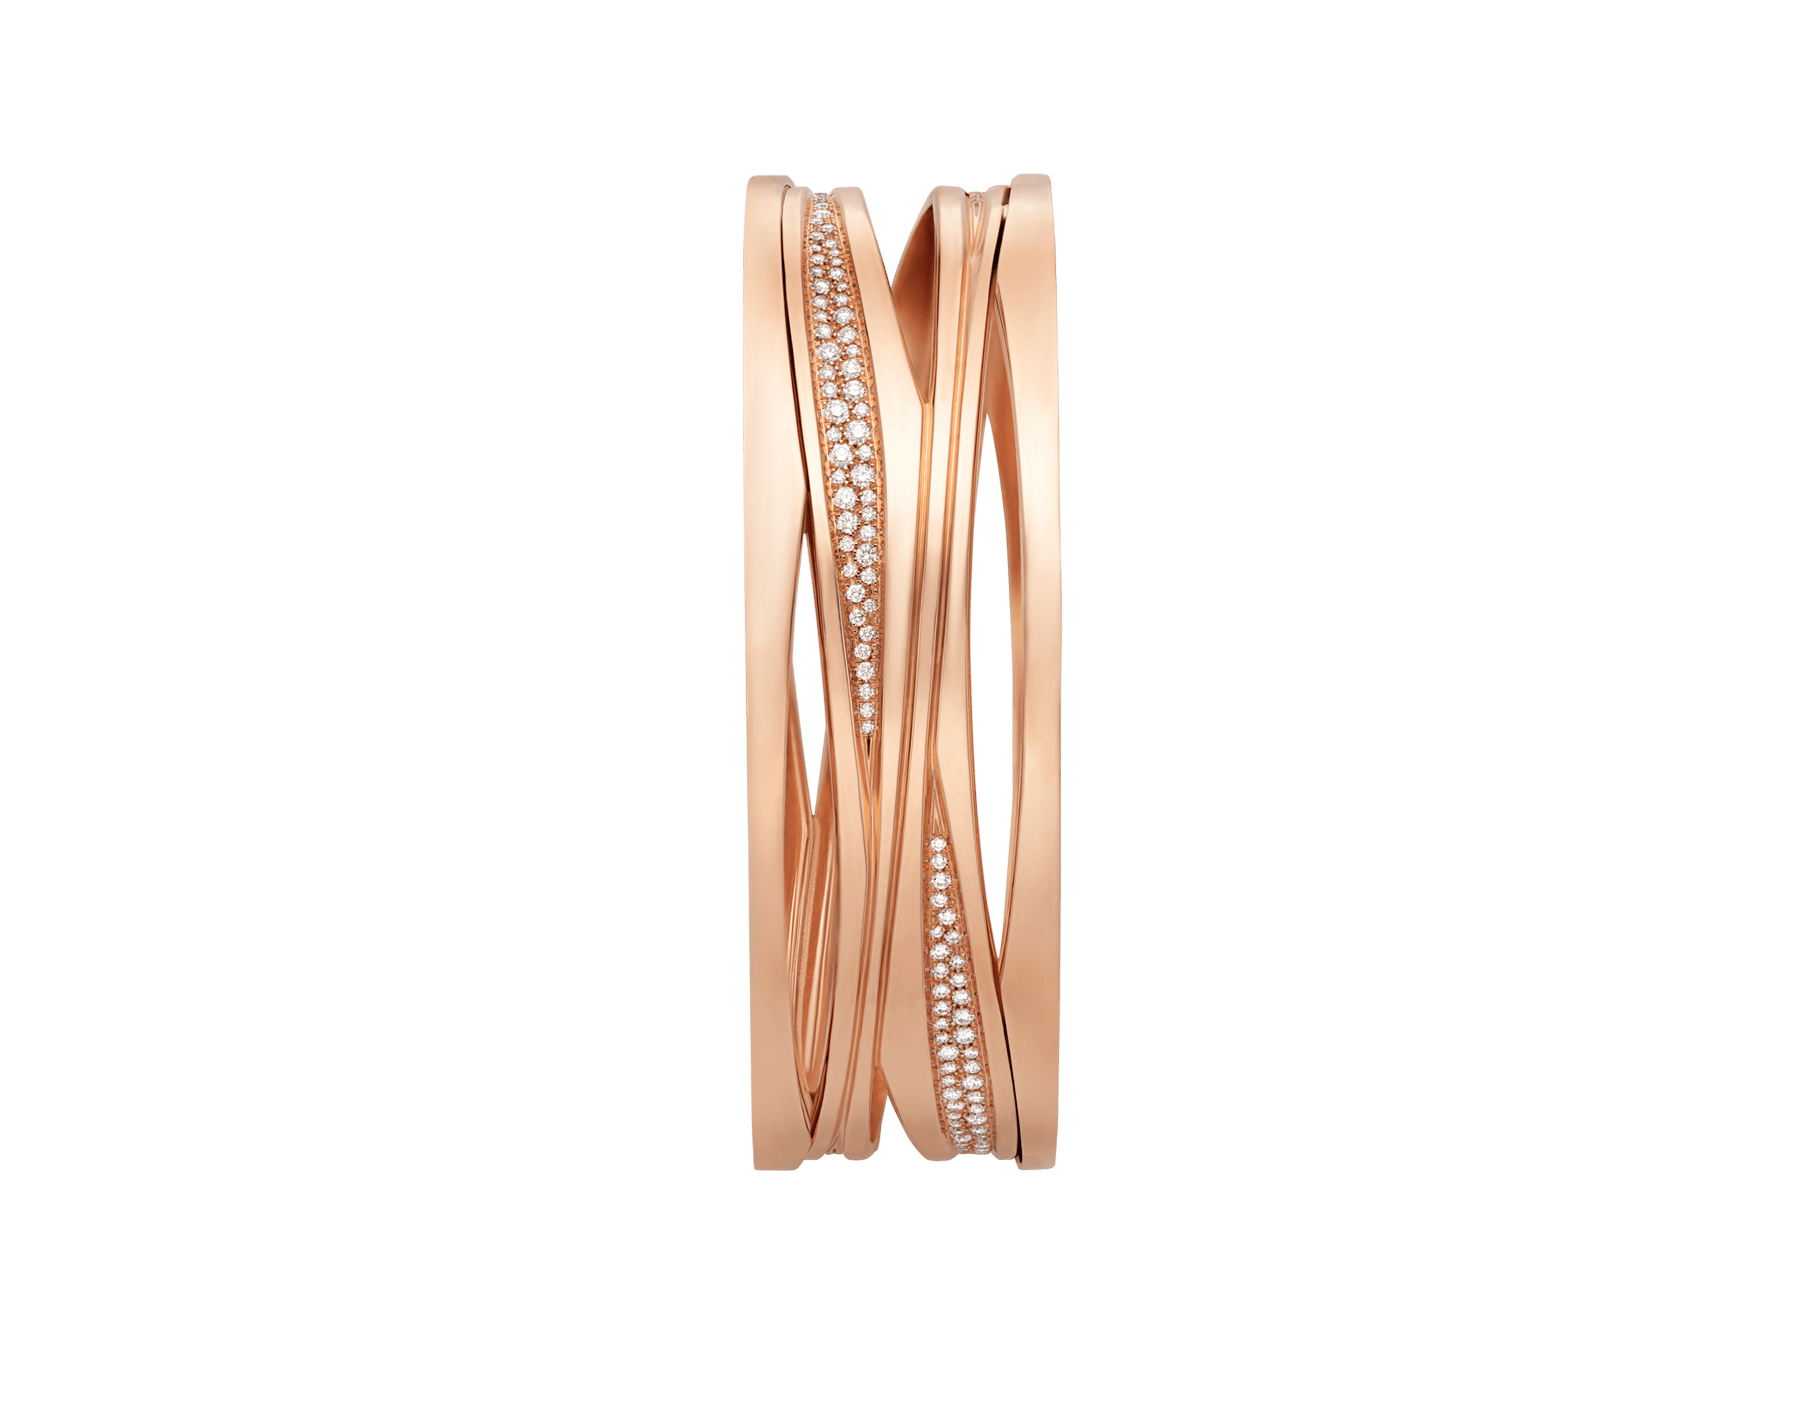 B.zero1 Design Legend bracelet in 18 kt rose gold, set with pavé diamonds on the spiral. BR858728 image 3